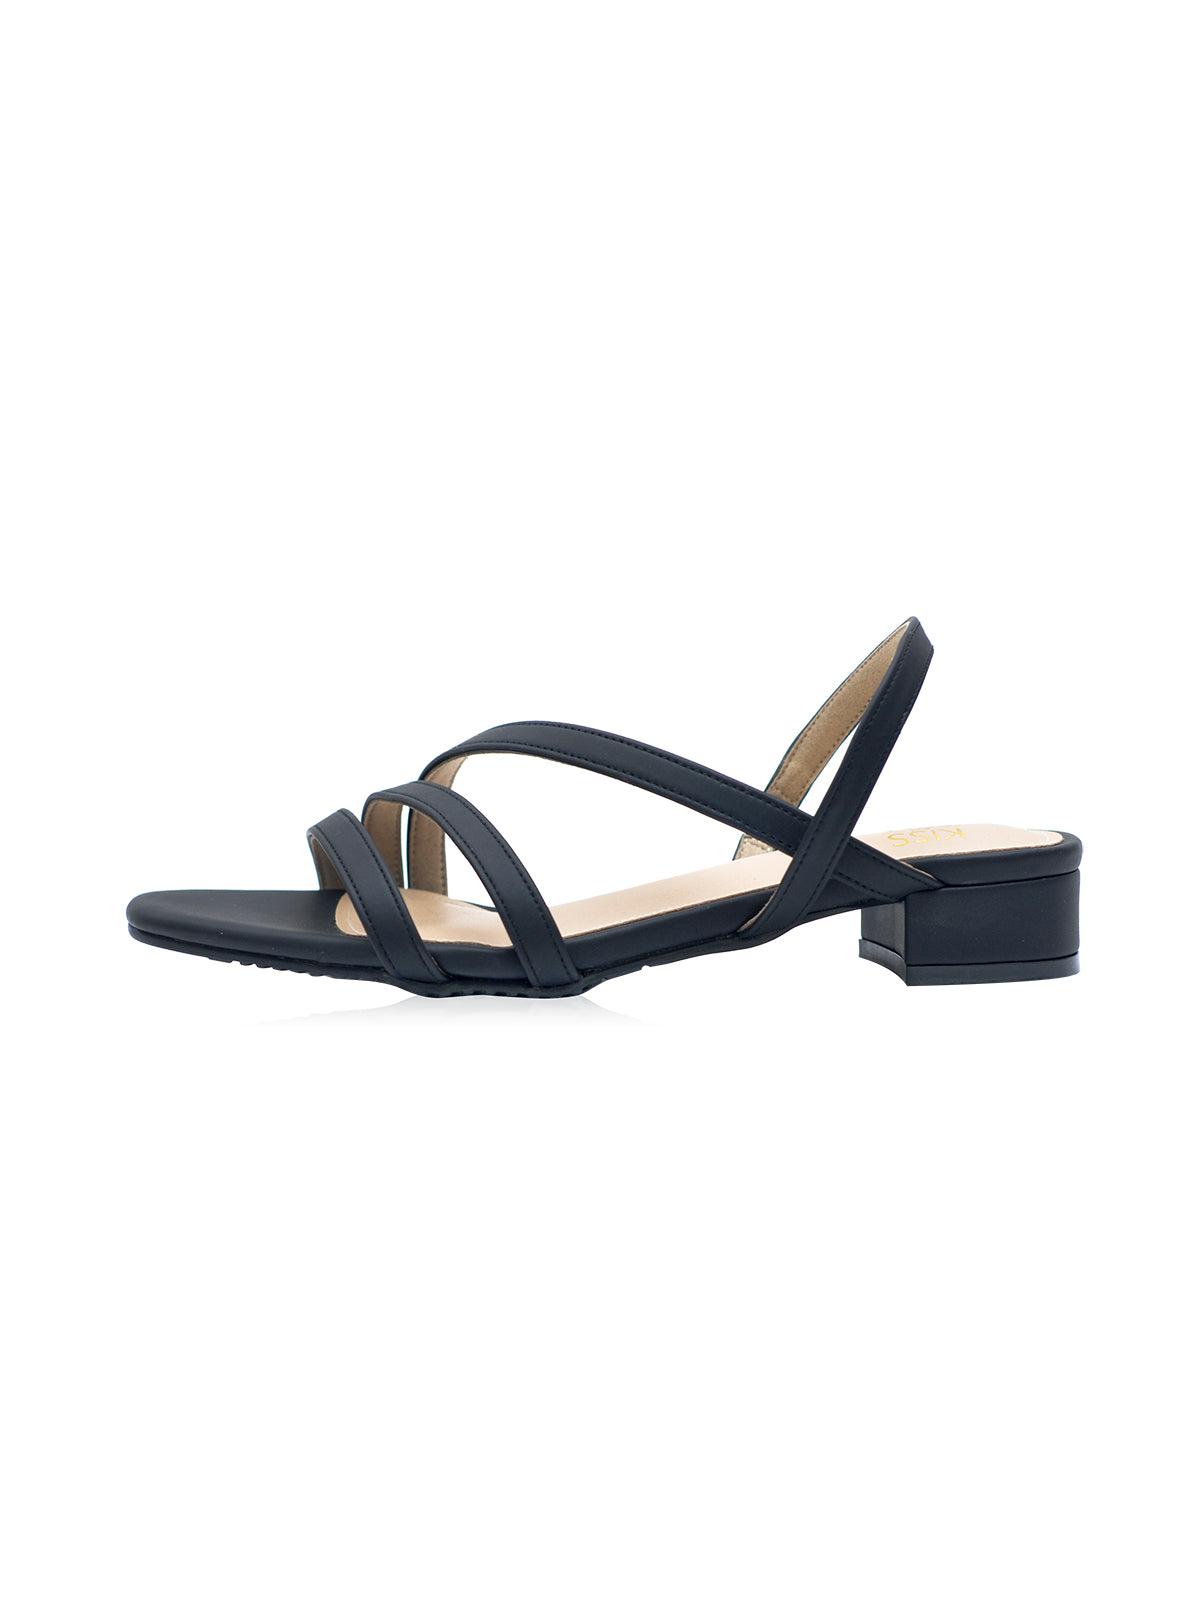 Alicia Sandals in Black